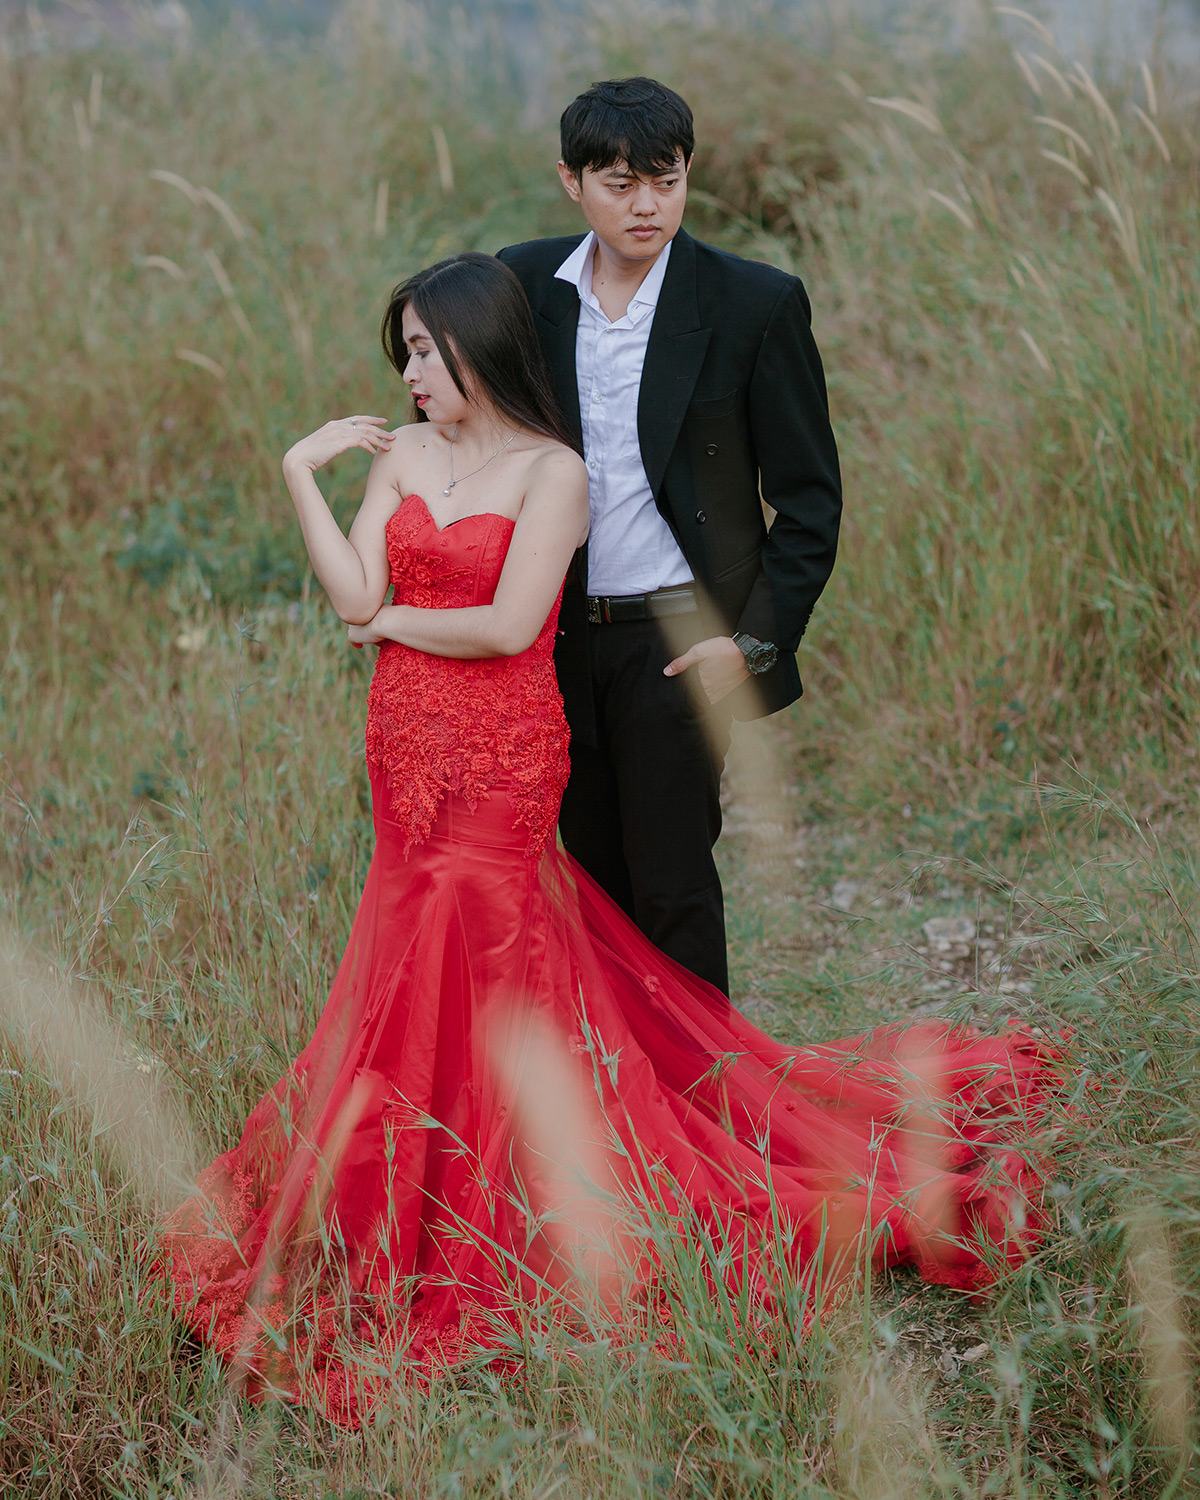 Suka banget dress nya , fit on me. It is really really match the name of red darling dress